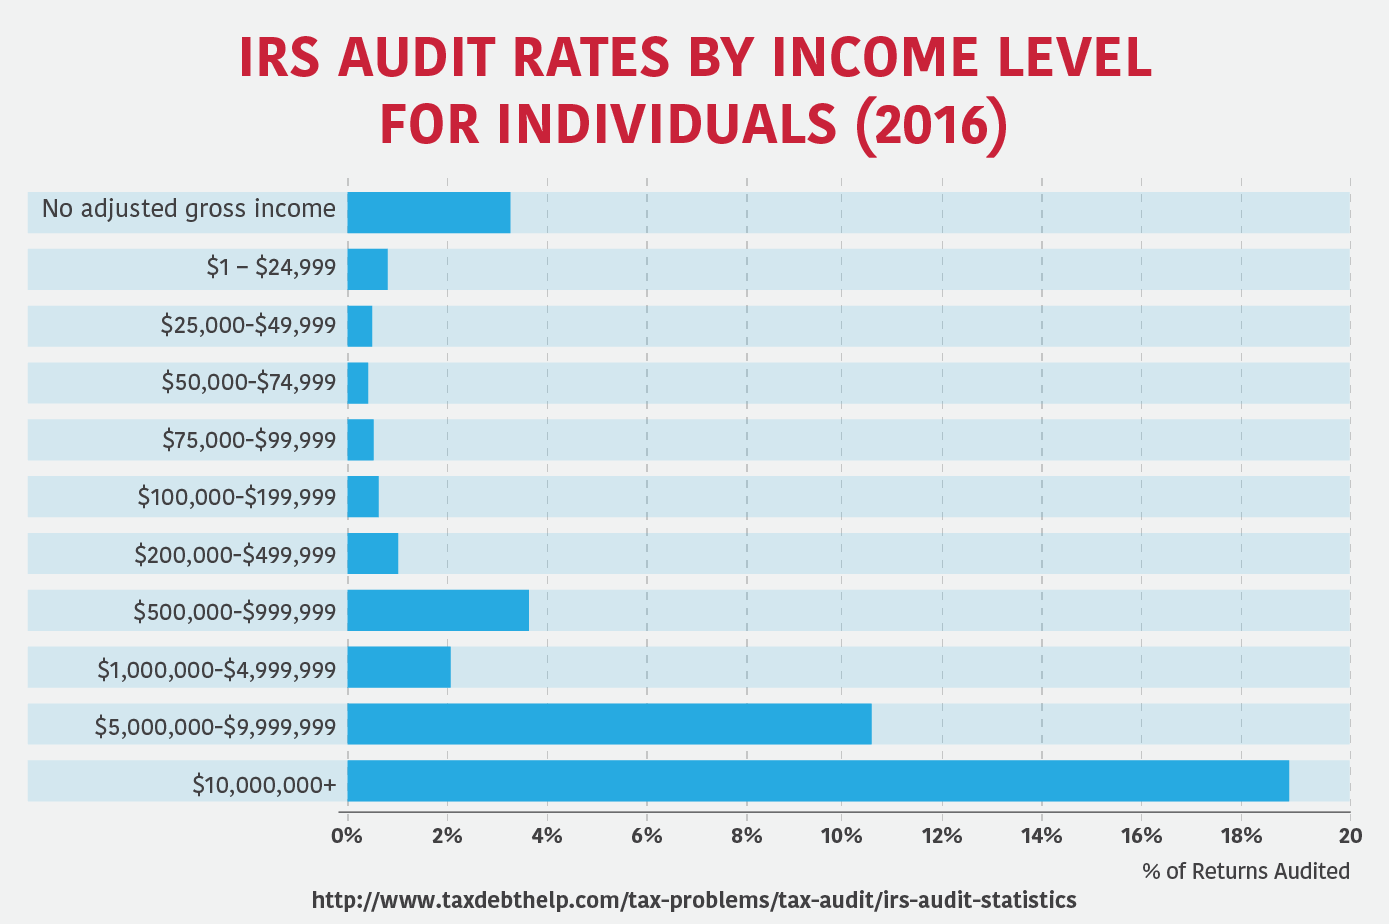 IRS Audit Rates by income level for individuals